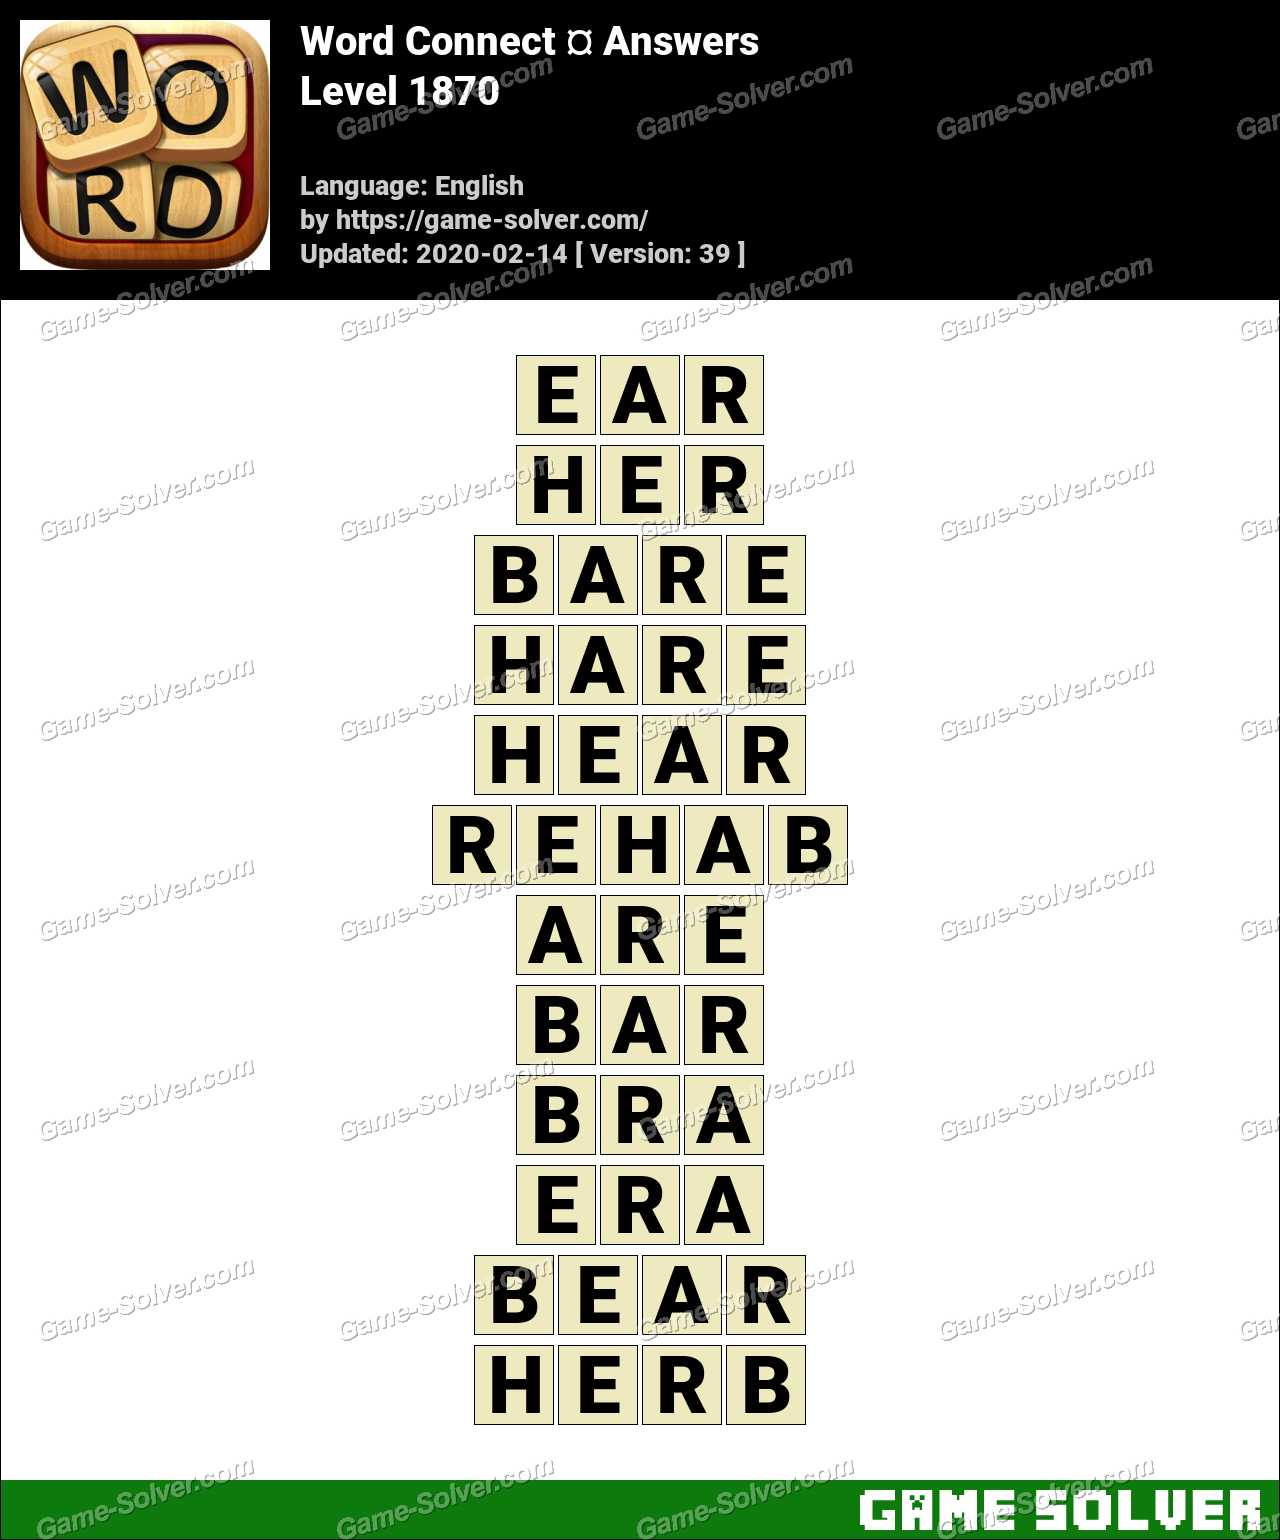 Word Connect Level 1870 Answers